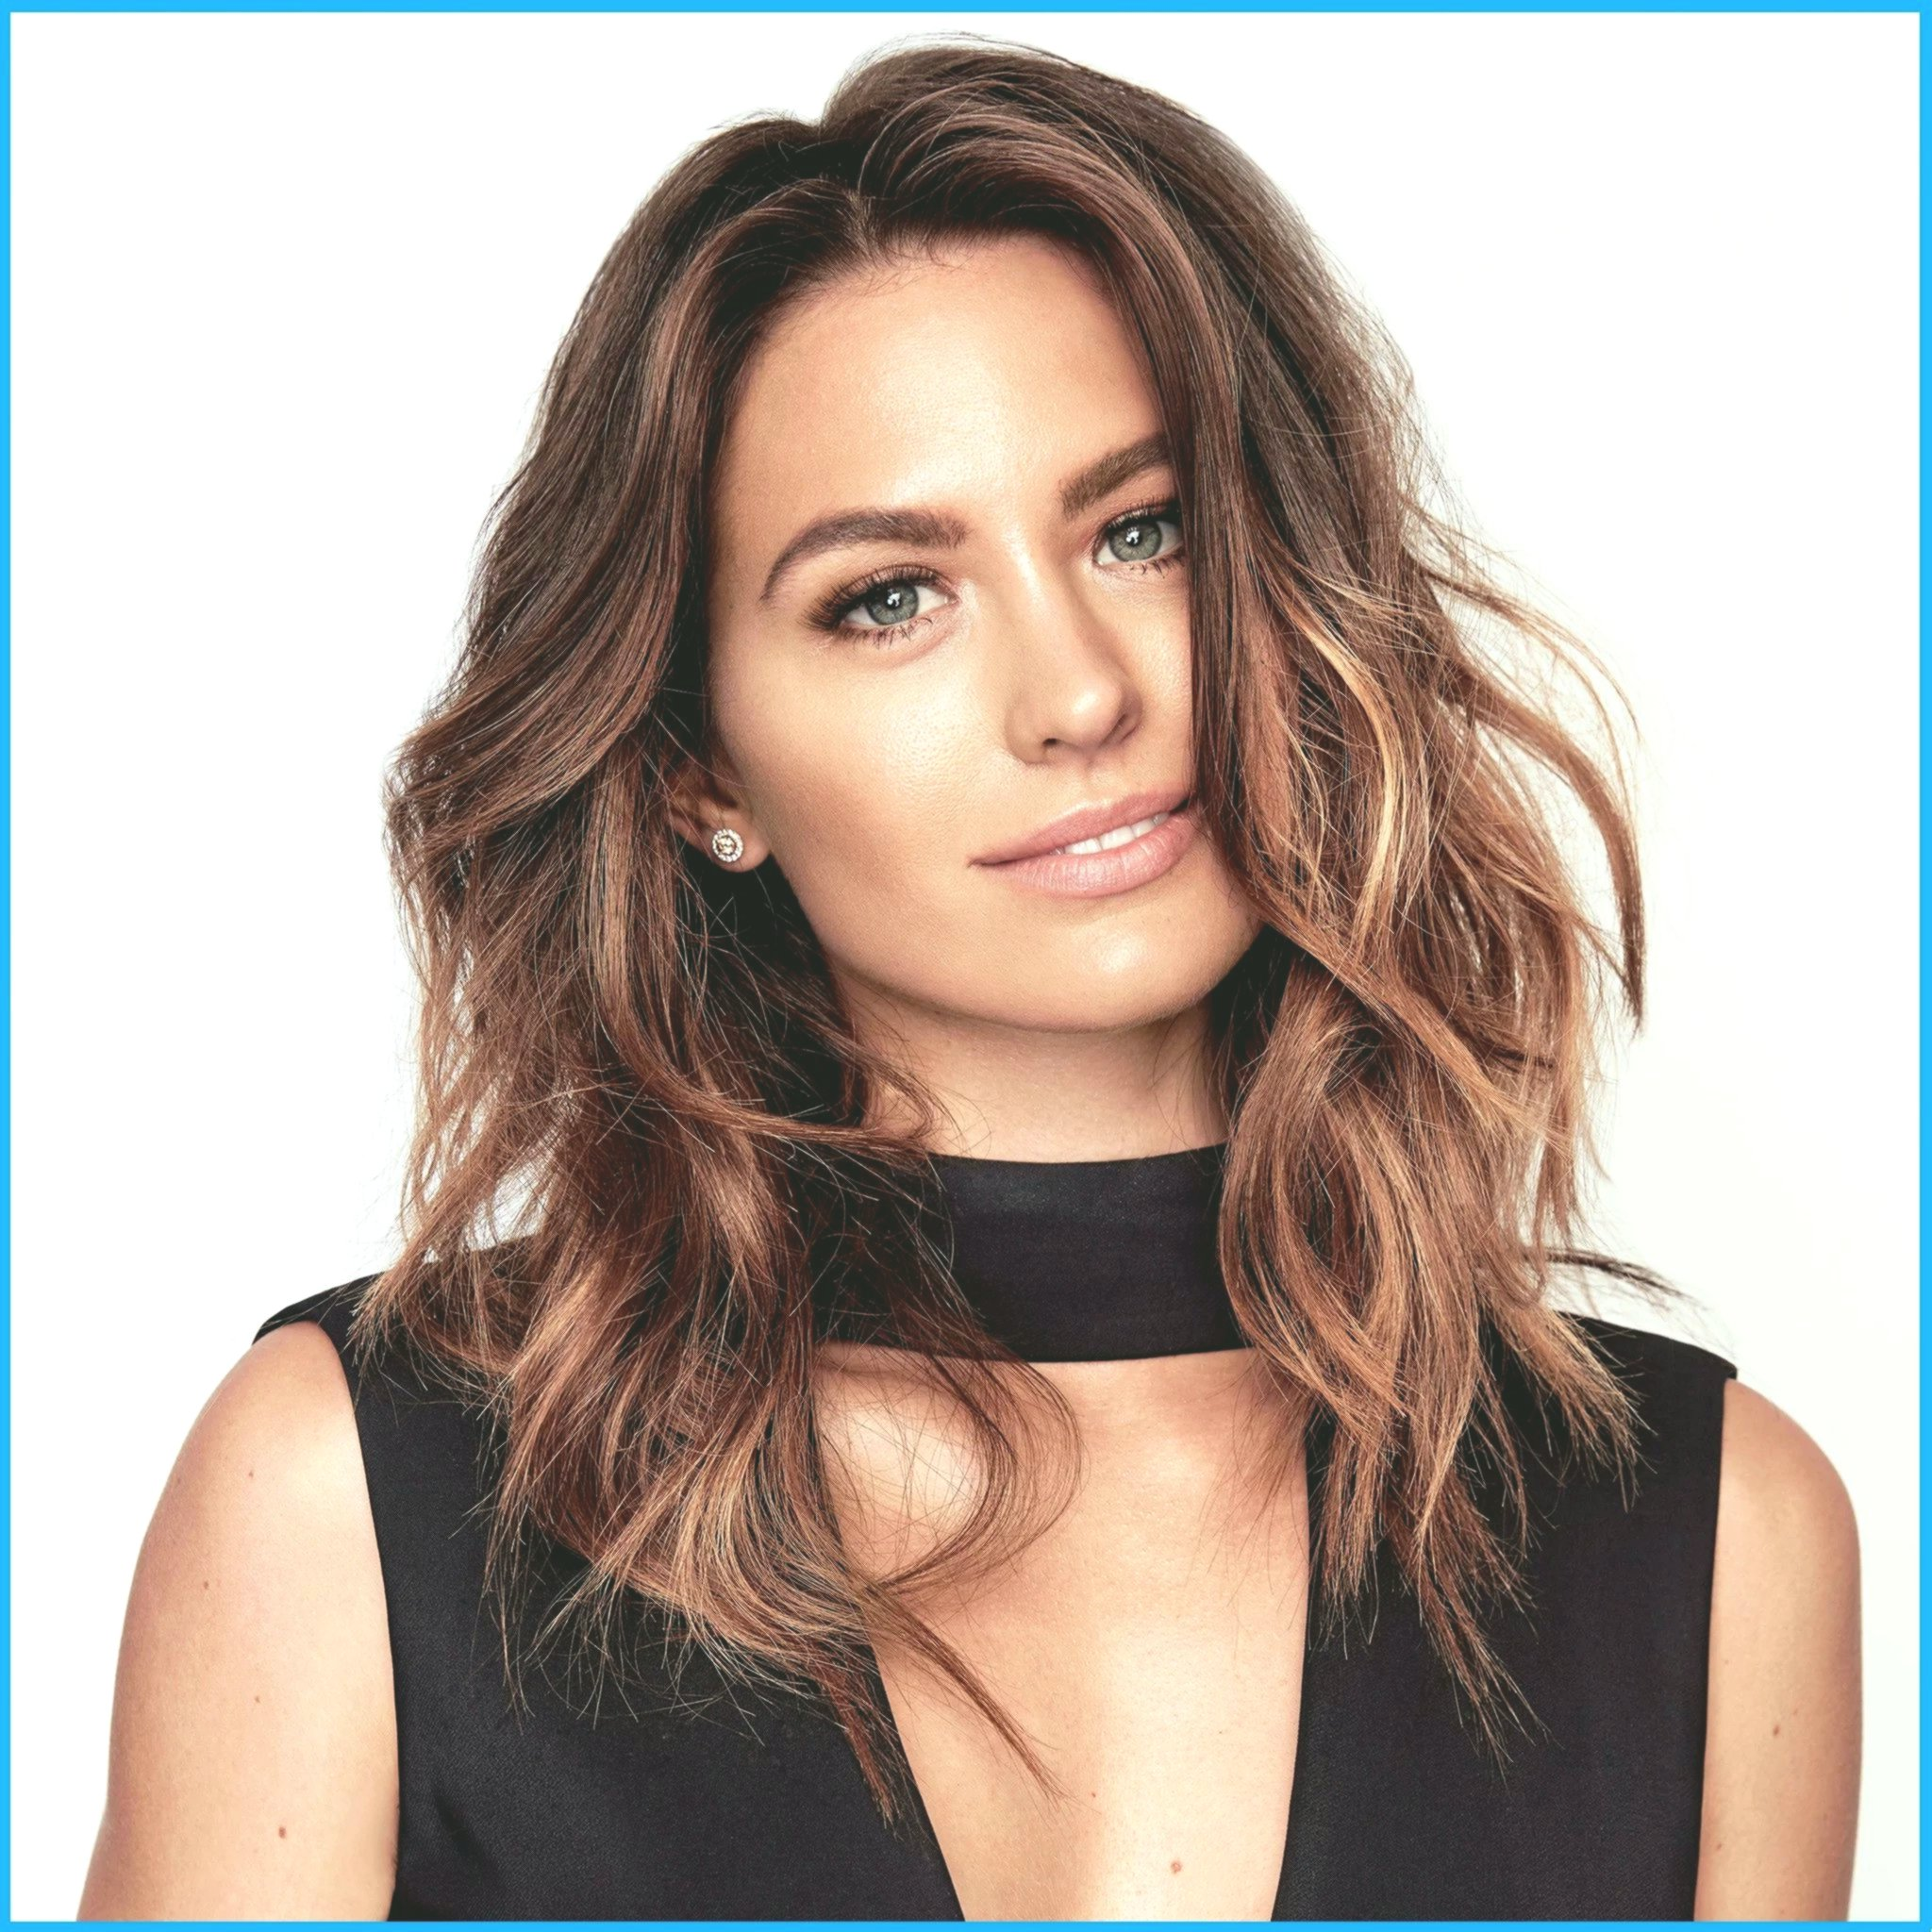 Upward image of woman's hairstyles building layout-Elegant image Of woman's hairstyles gallery